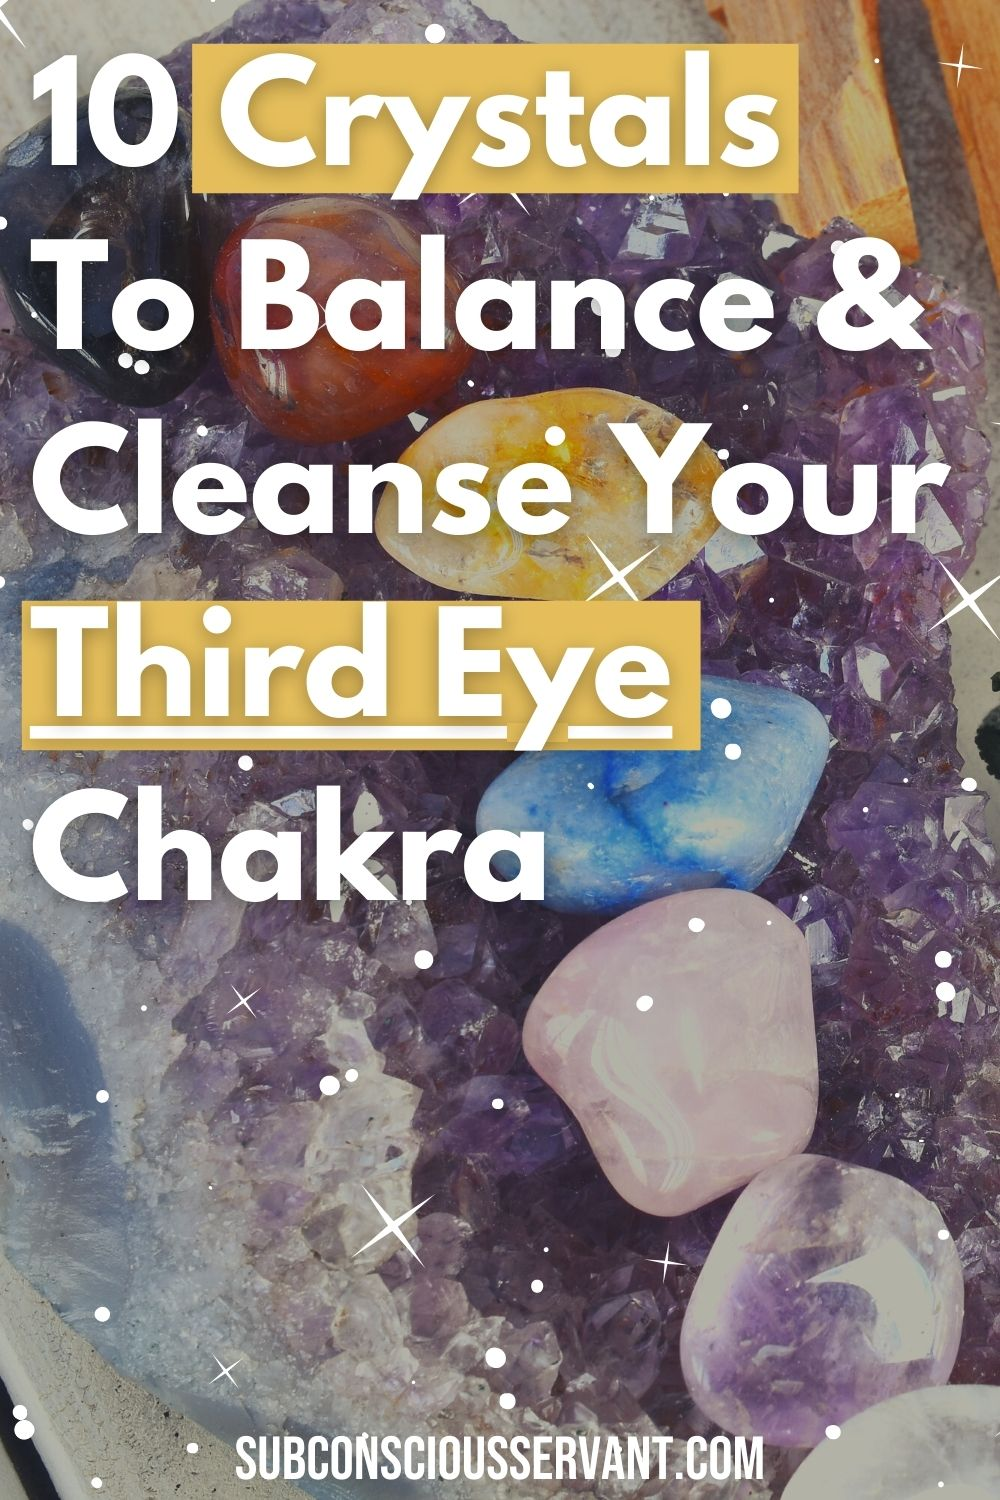 10 Crystals To Balance & Cleanse Your Third Eye Chakra